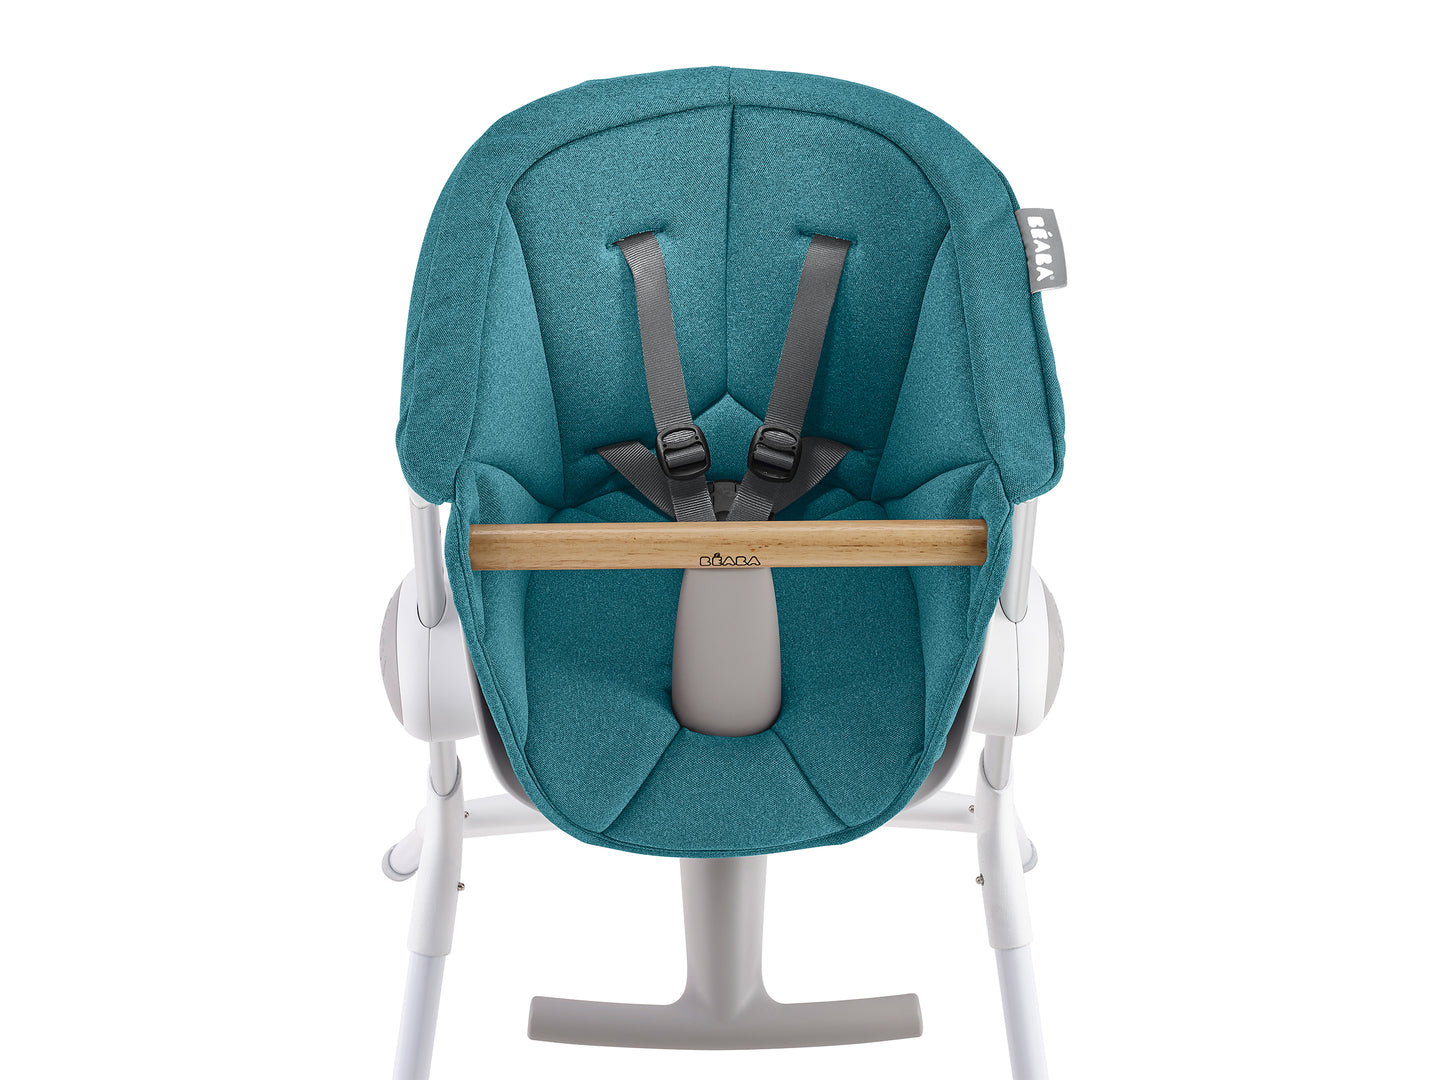 Comfy Seat Cushion for the Up & Down High Chair